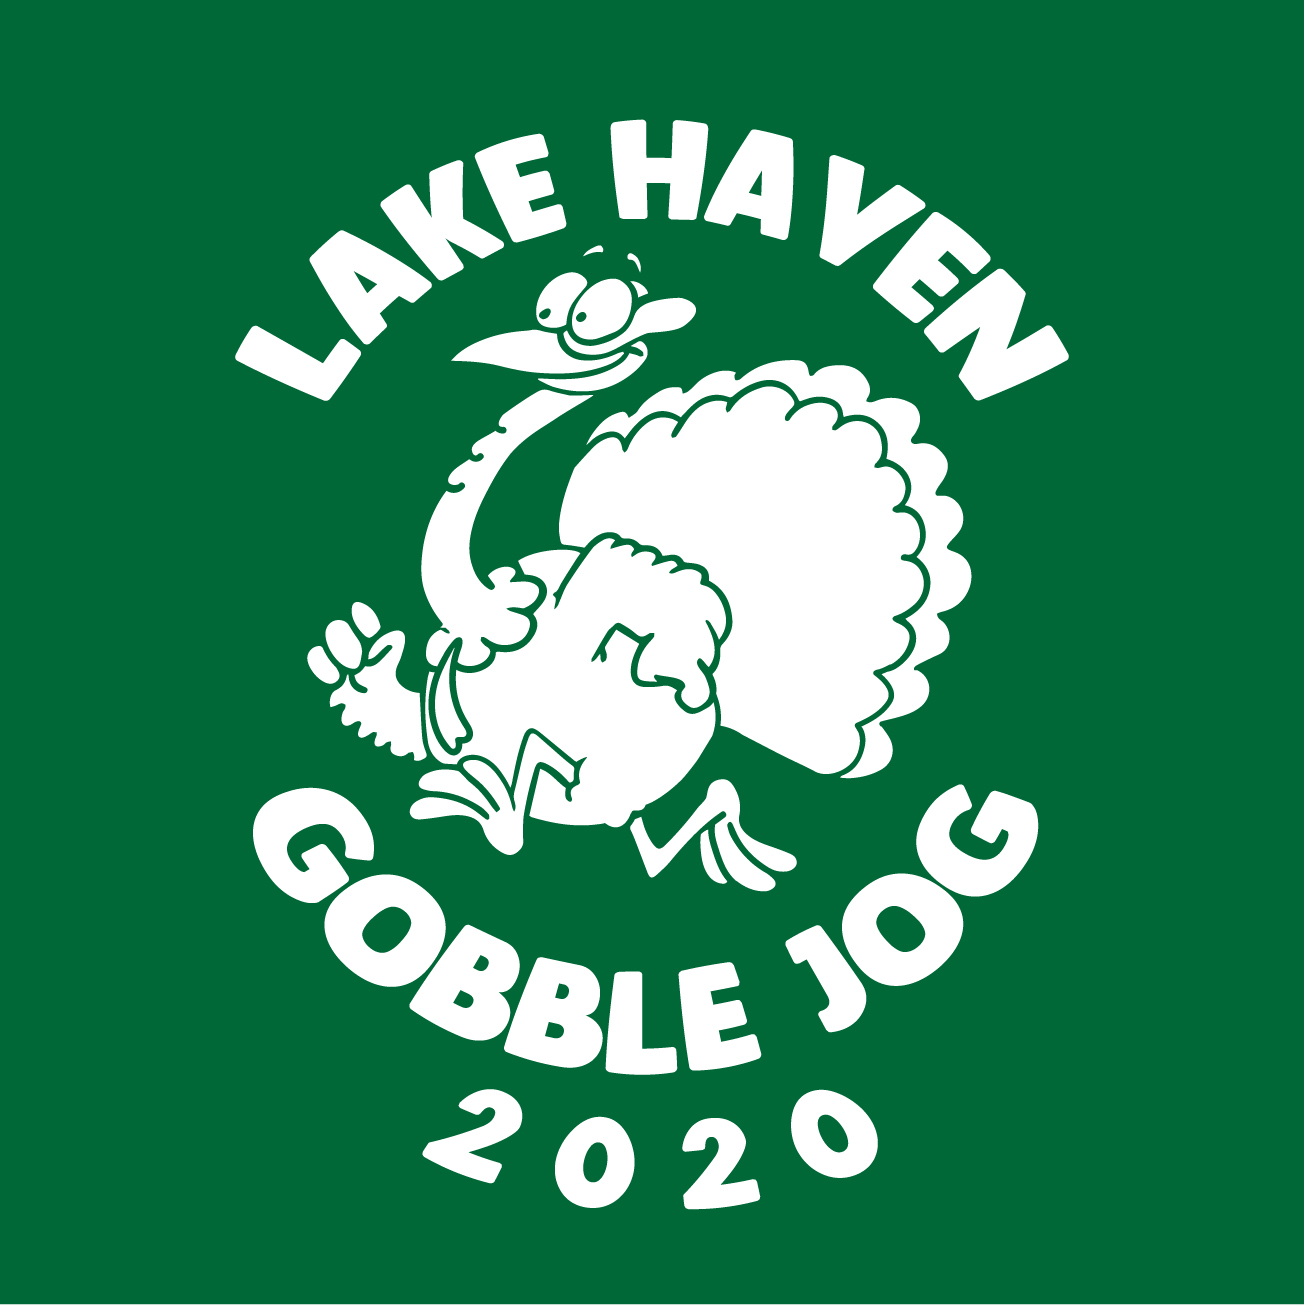 Lake Haven Gobble Jog